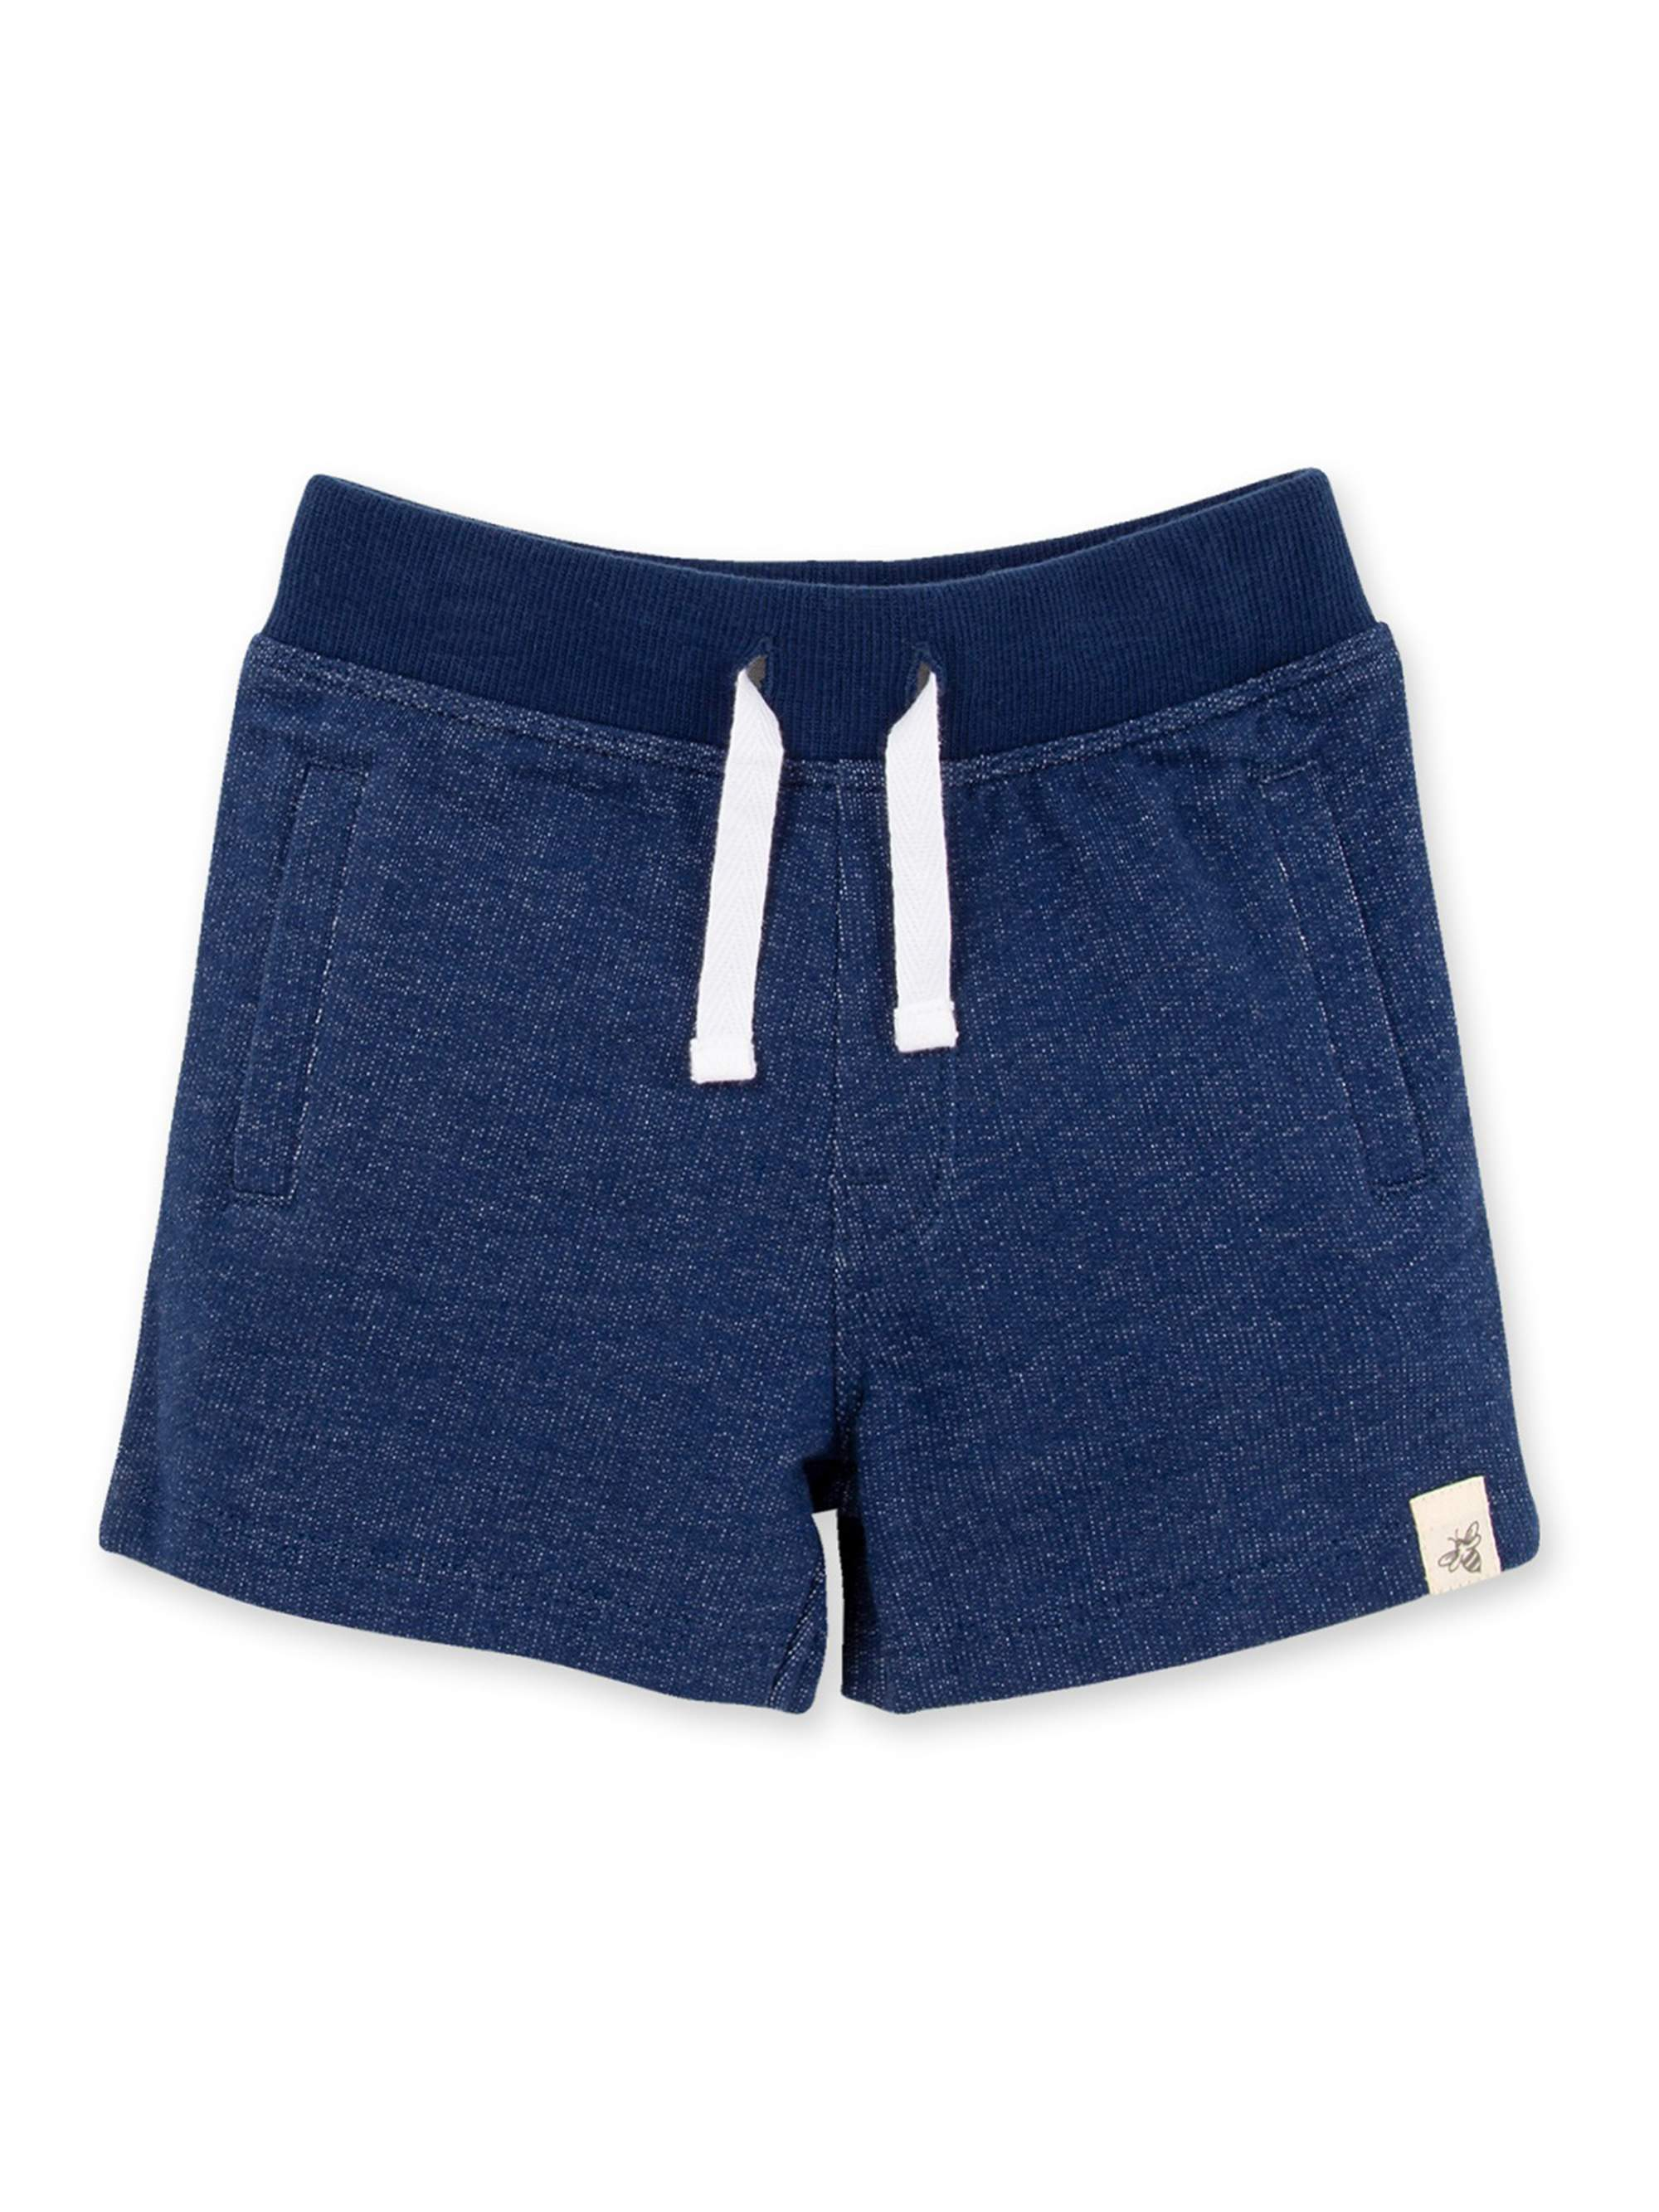 Baby Boy Burt's Bees Baby Organic Two-Tone French Terry Shorts